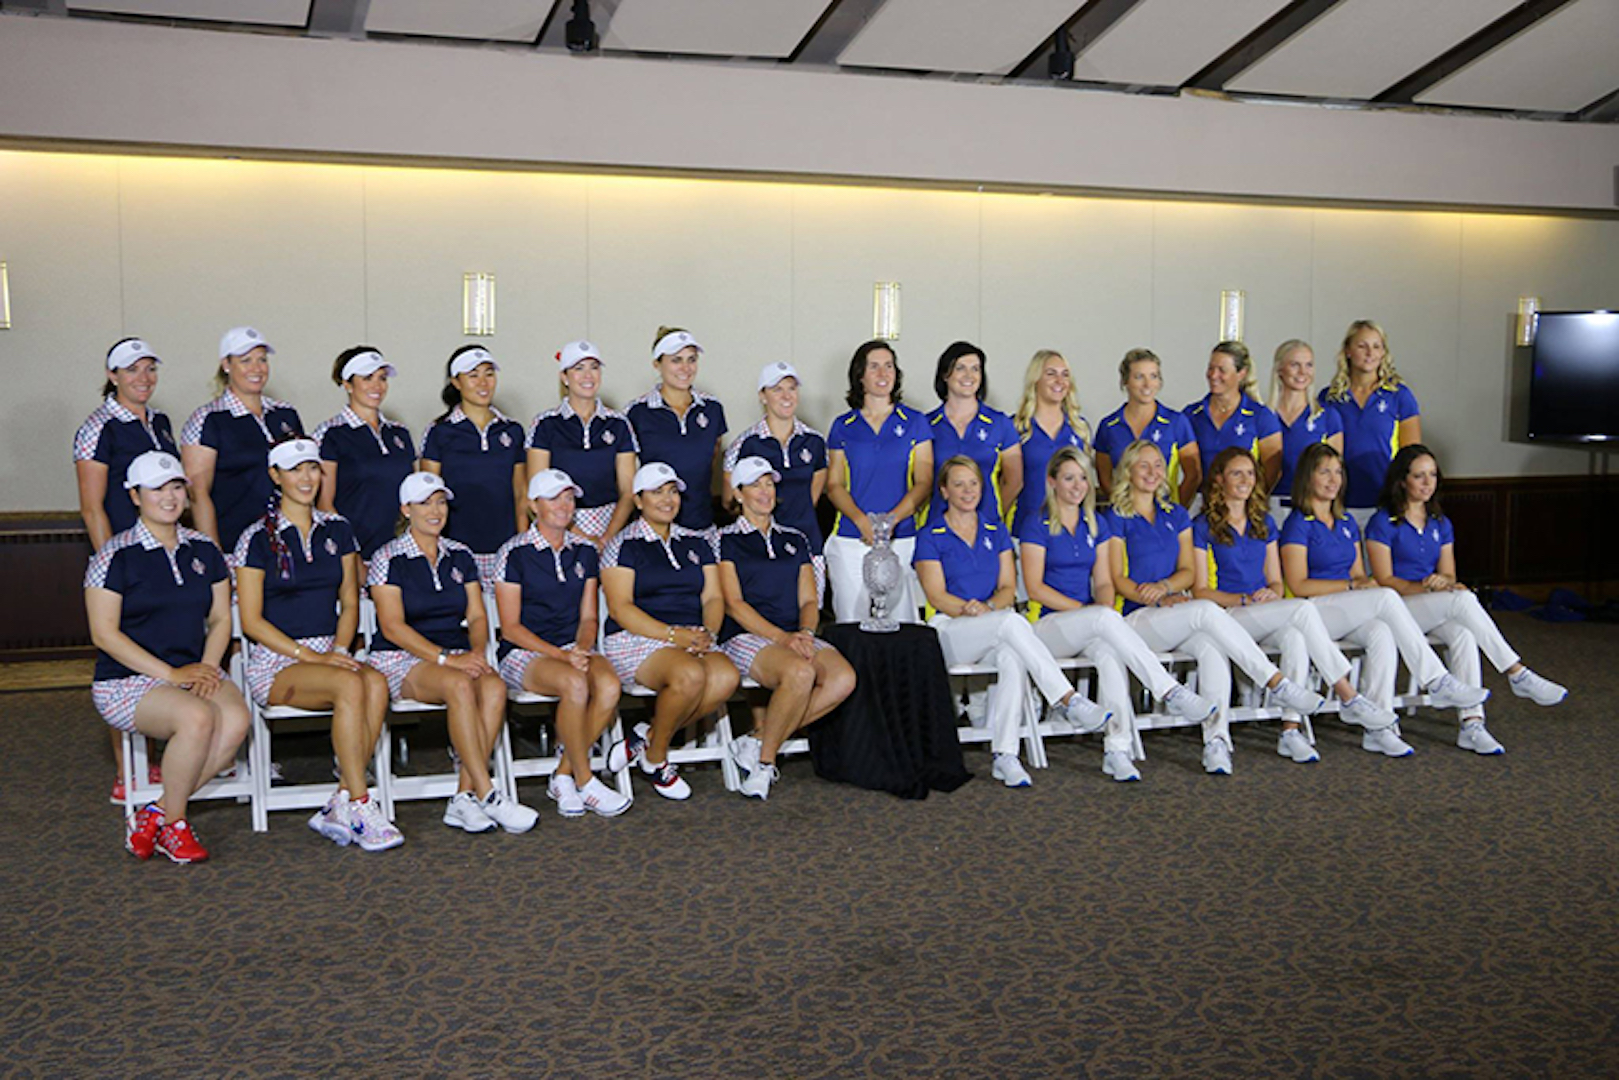 Pettersen out, Matthew in for Solheim Cup team